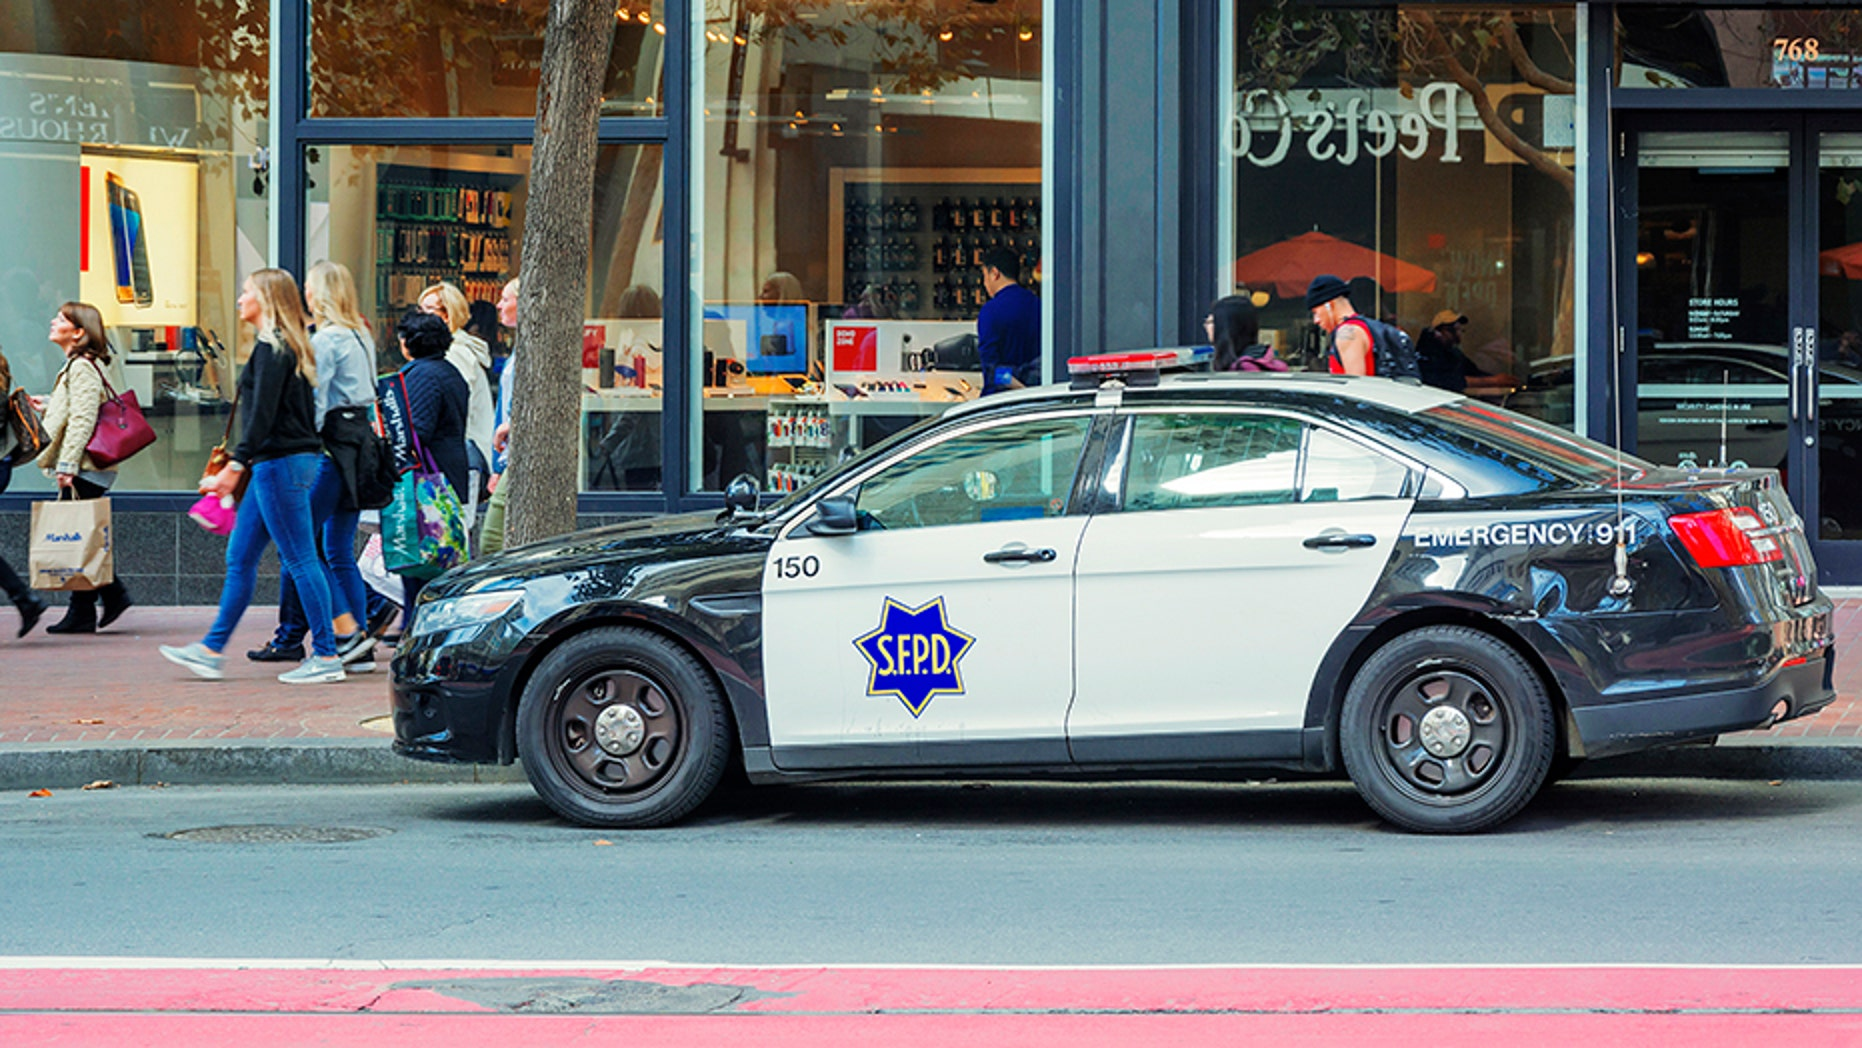 A passenger inside an autonomous vehicle was issued a ticket on Monday after an officer said it didn't yield to a pedestrian who was in a crosswalk, police said.